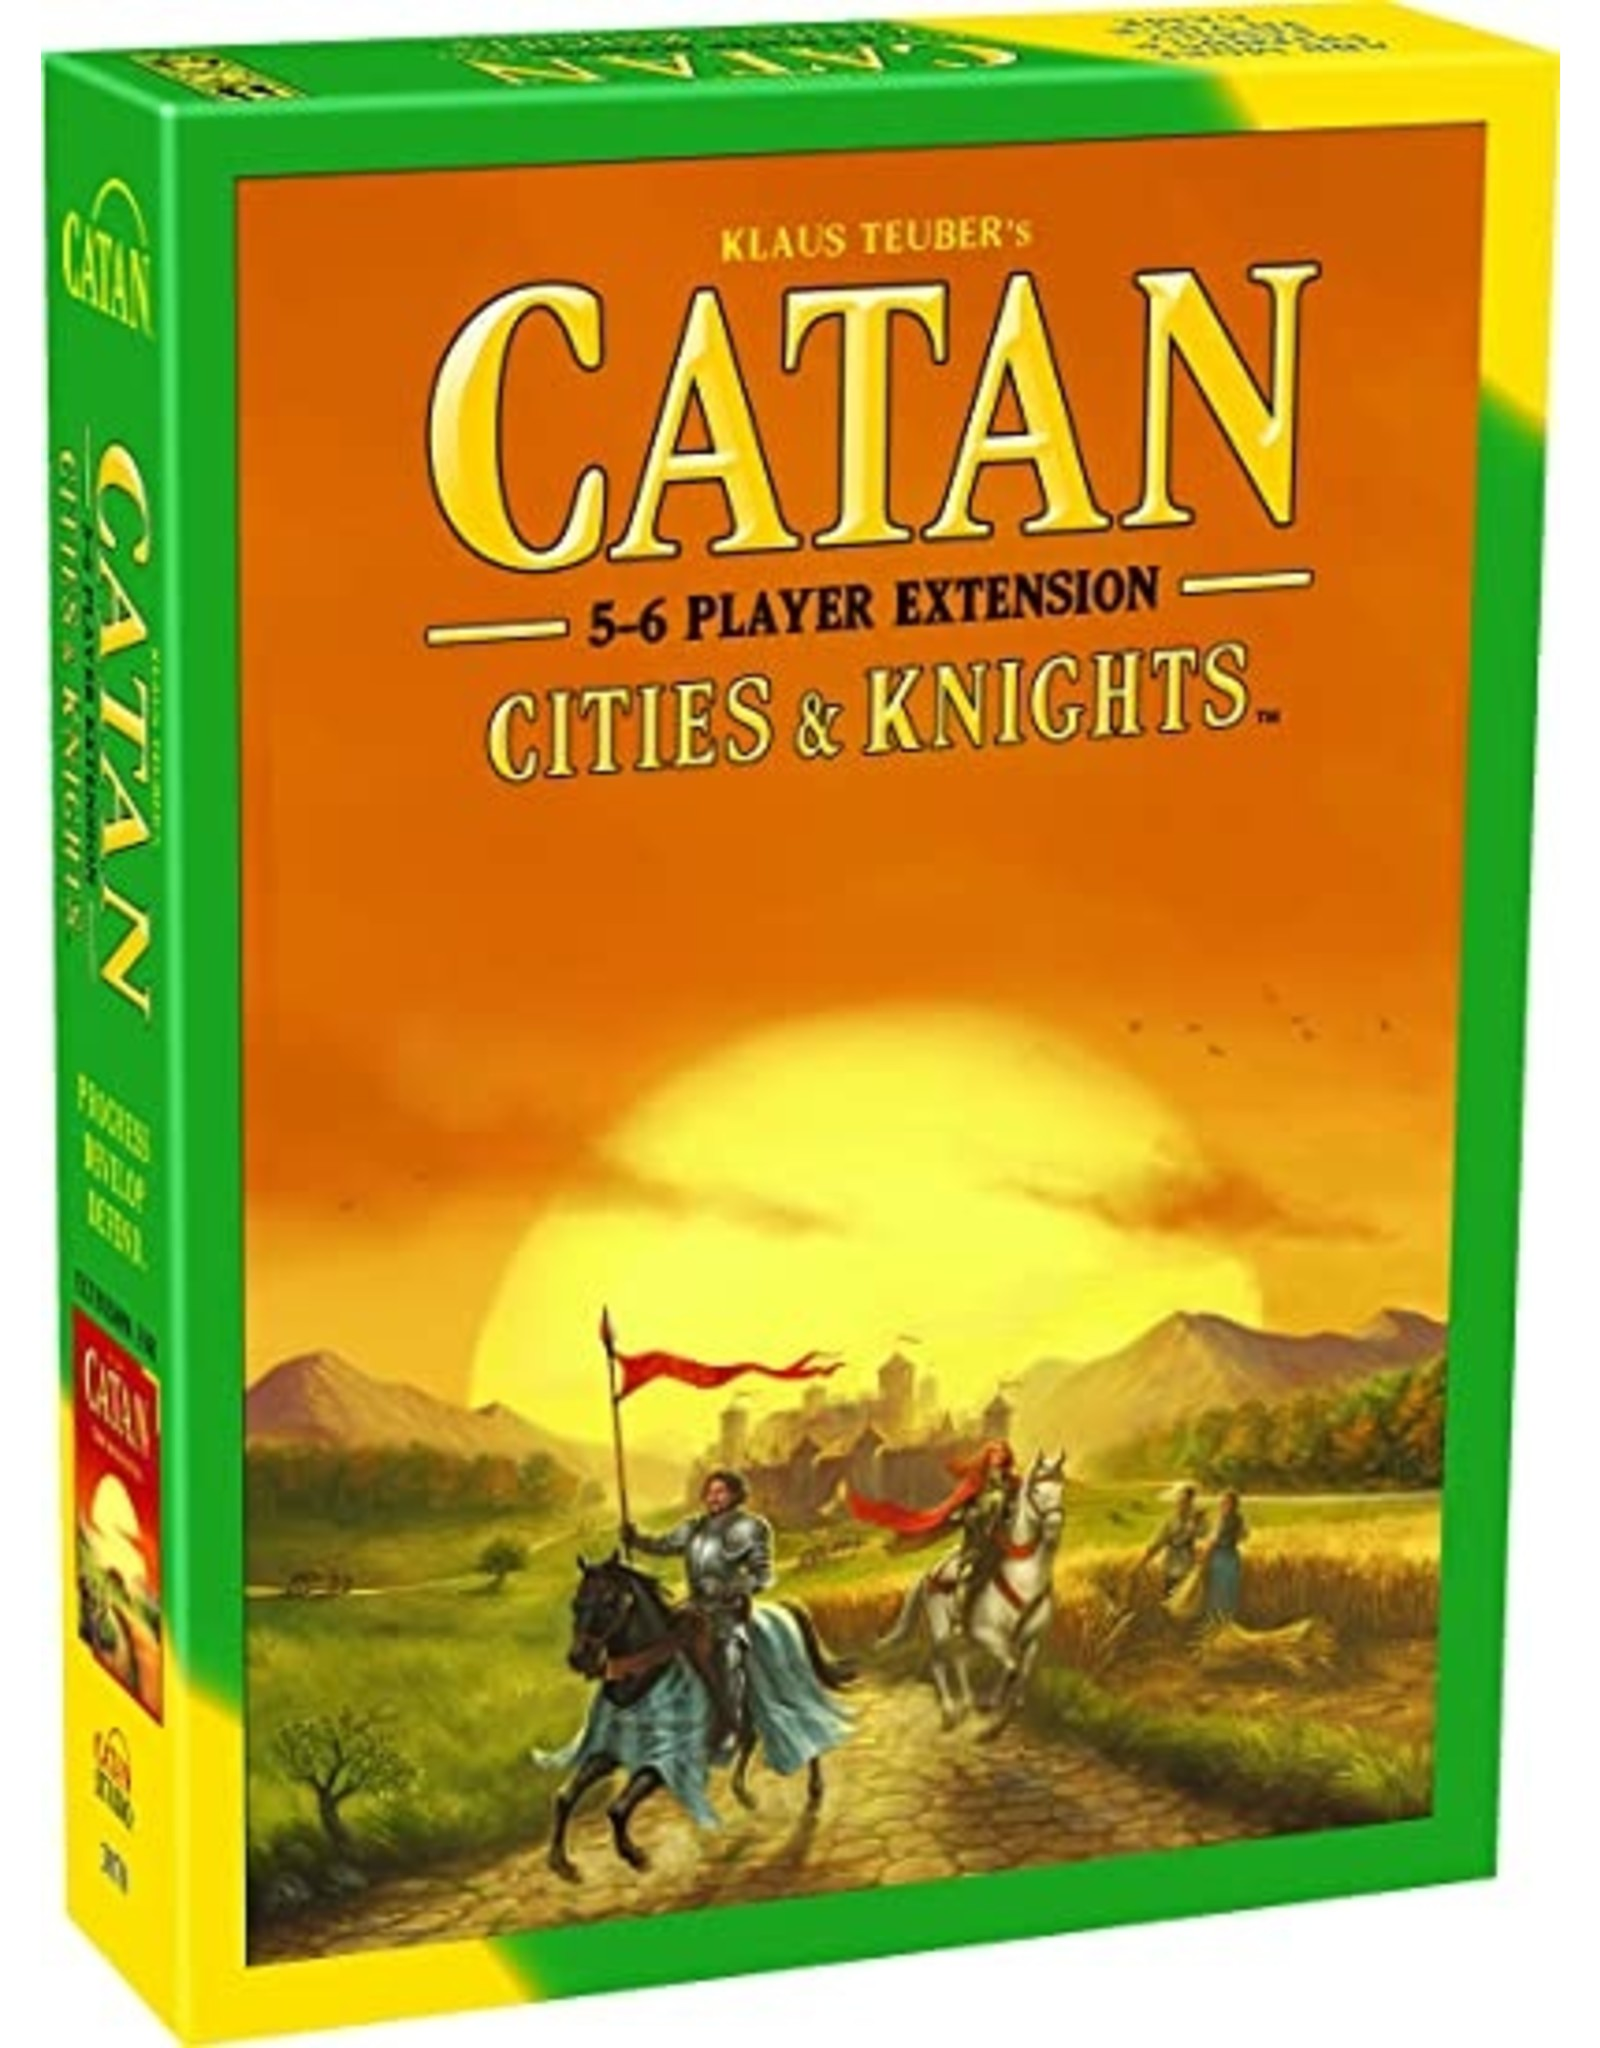 Catan Studios Catan Cities and Knights 5-6 player expansion